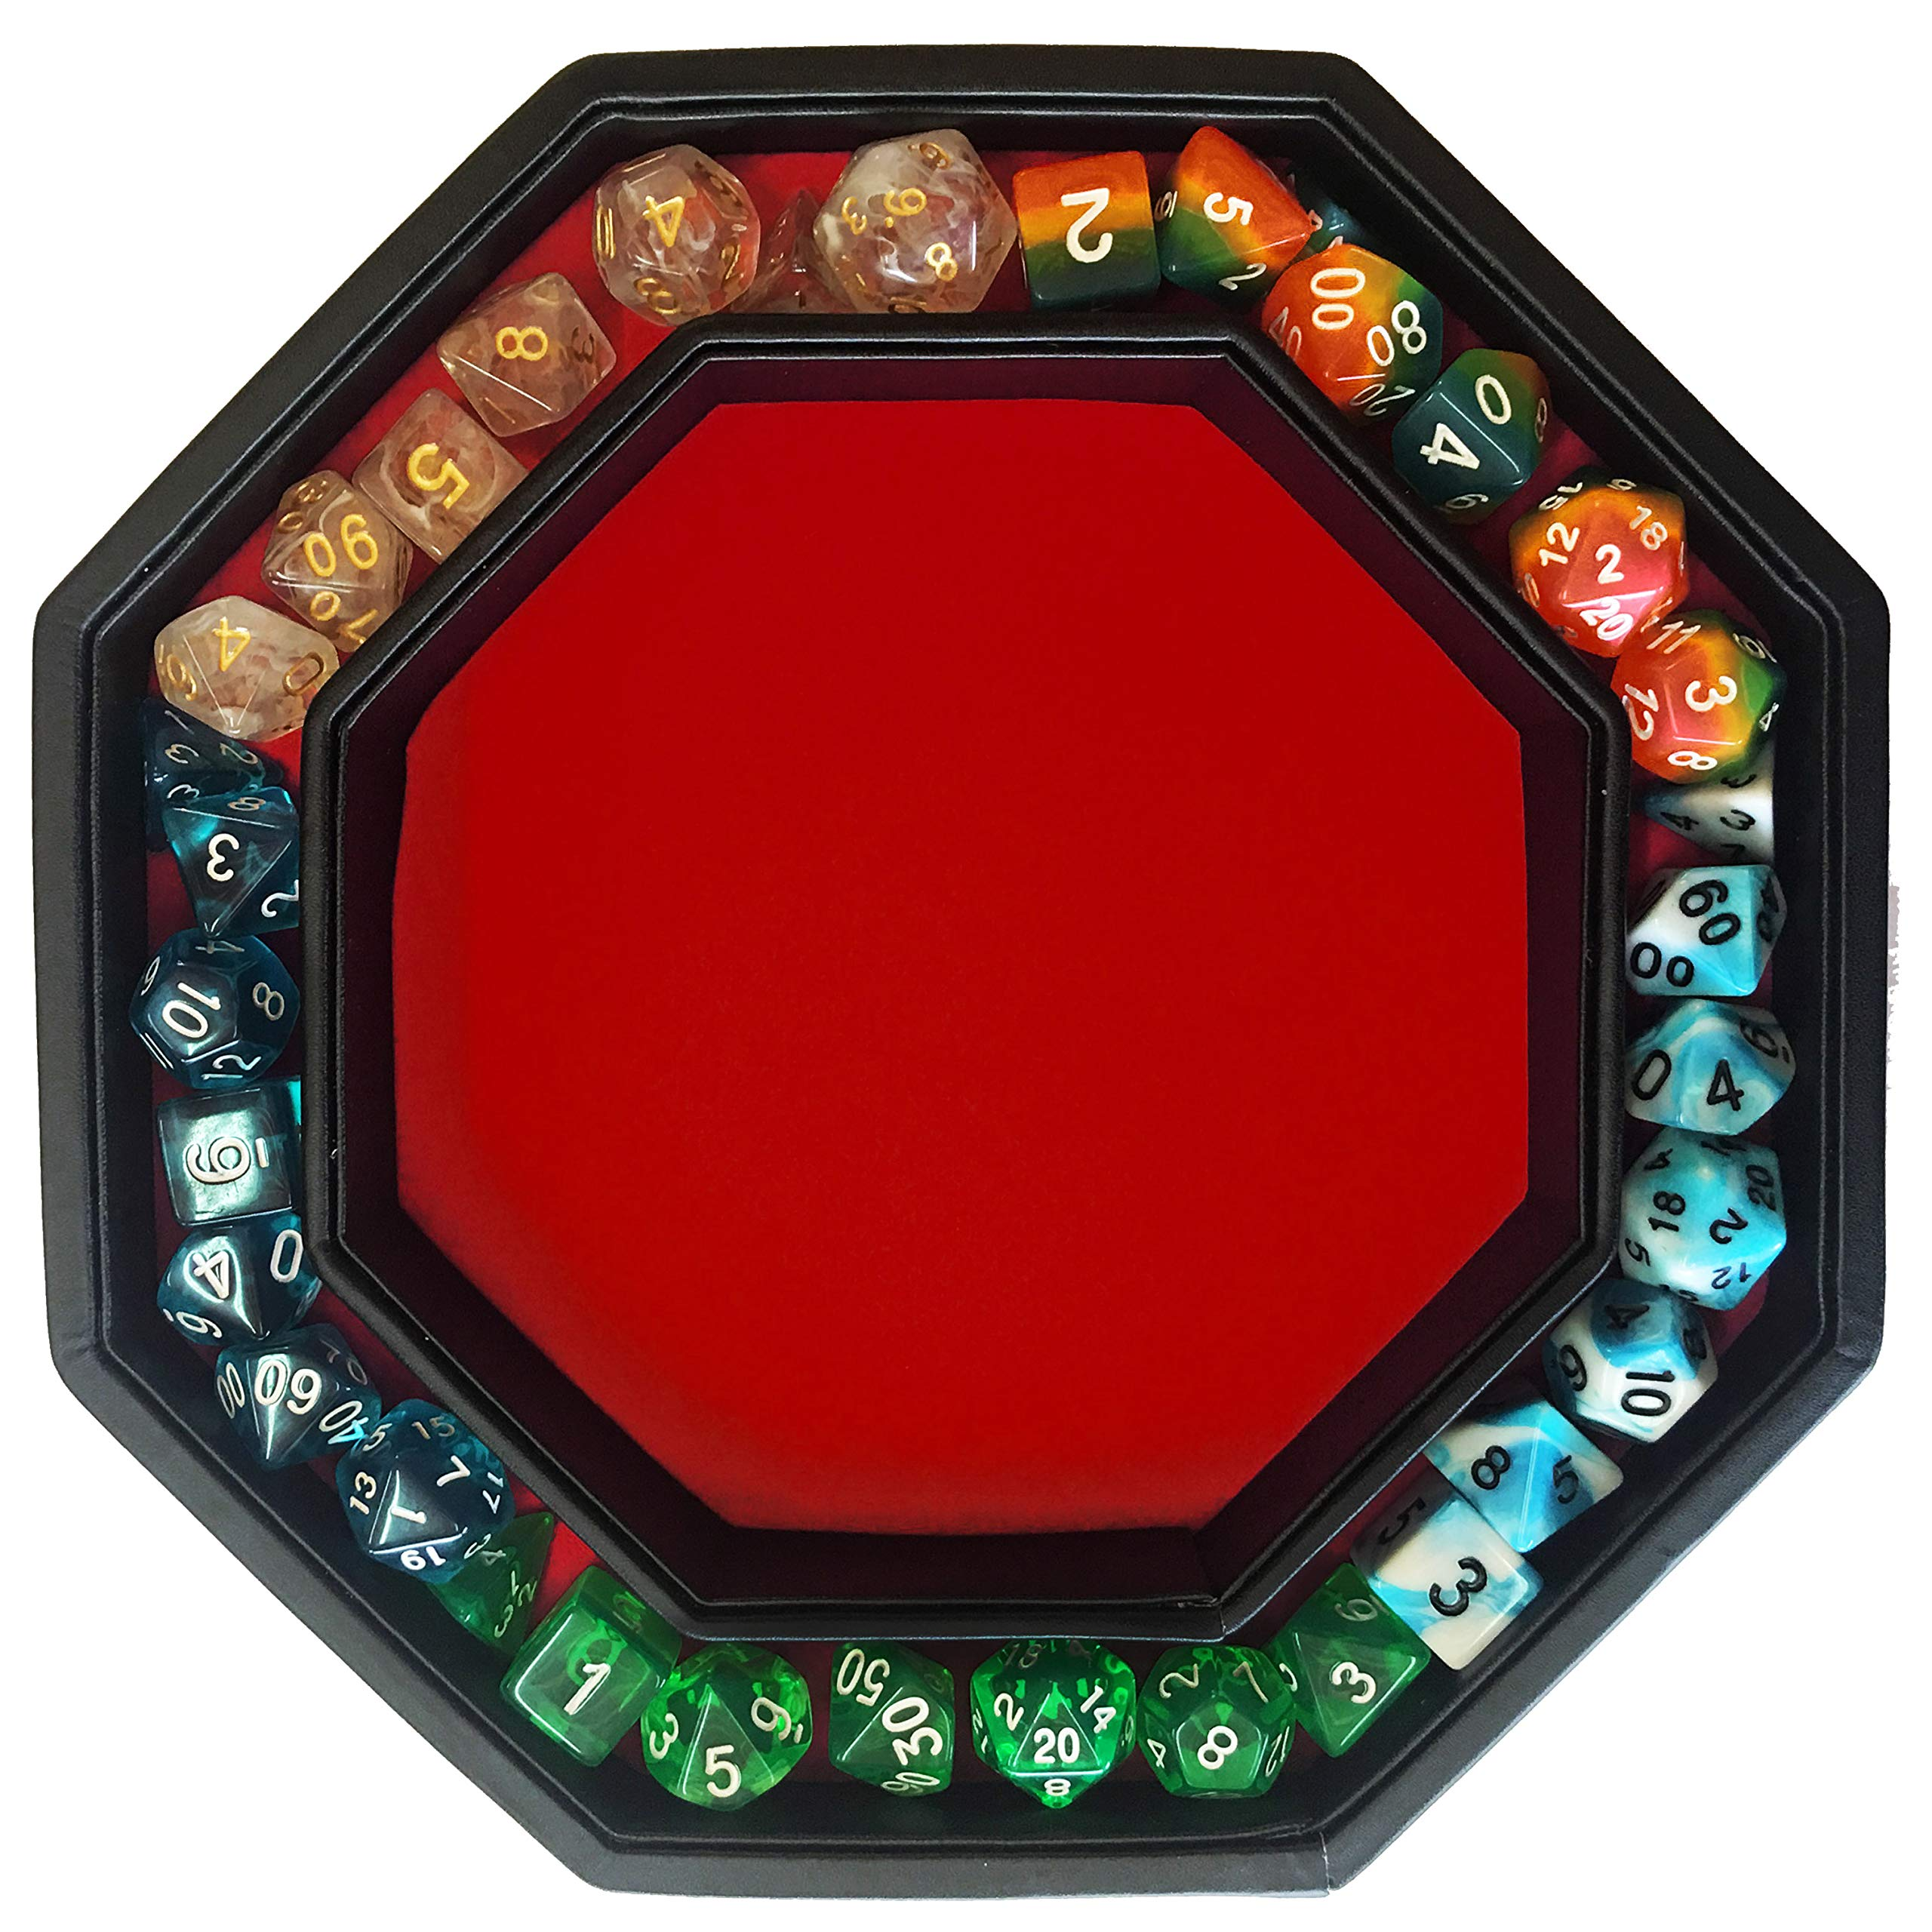 Fantasydice- RED - Fire Dragon - Dice Tray - 8'' Octagon with Lid and Dice Staging Area- Holds 5 Sets of Dice(7 / Standard) for All Tabletop RPGs Like D&D , Call of Cthulhu, Shadowrun. by Fantasydice (Image #7)